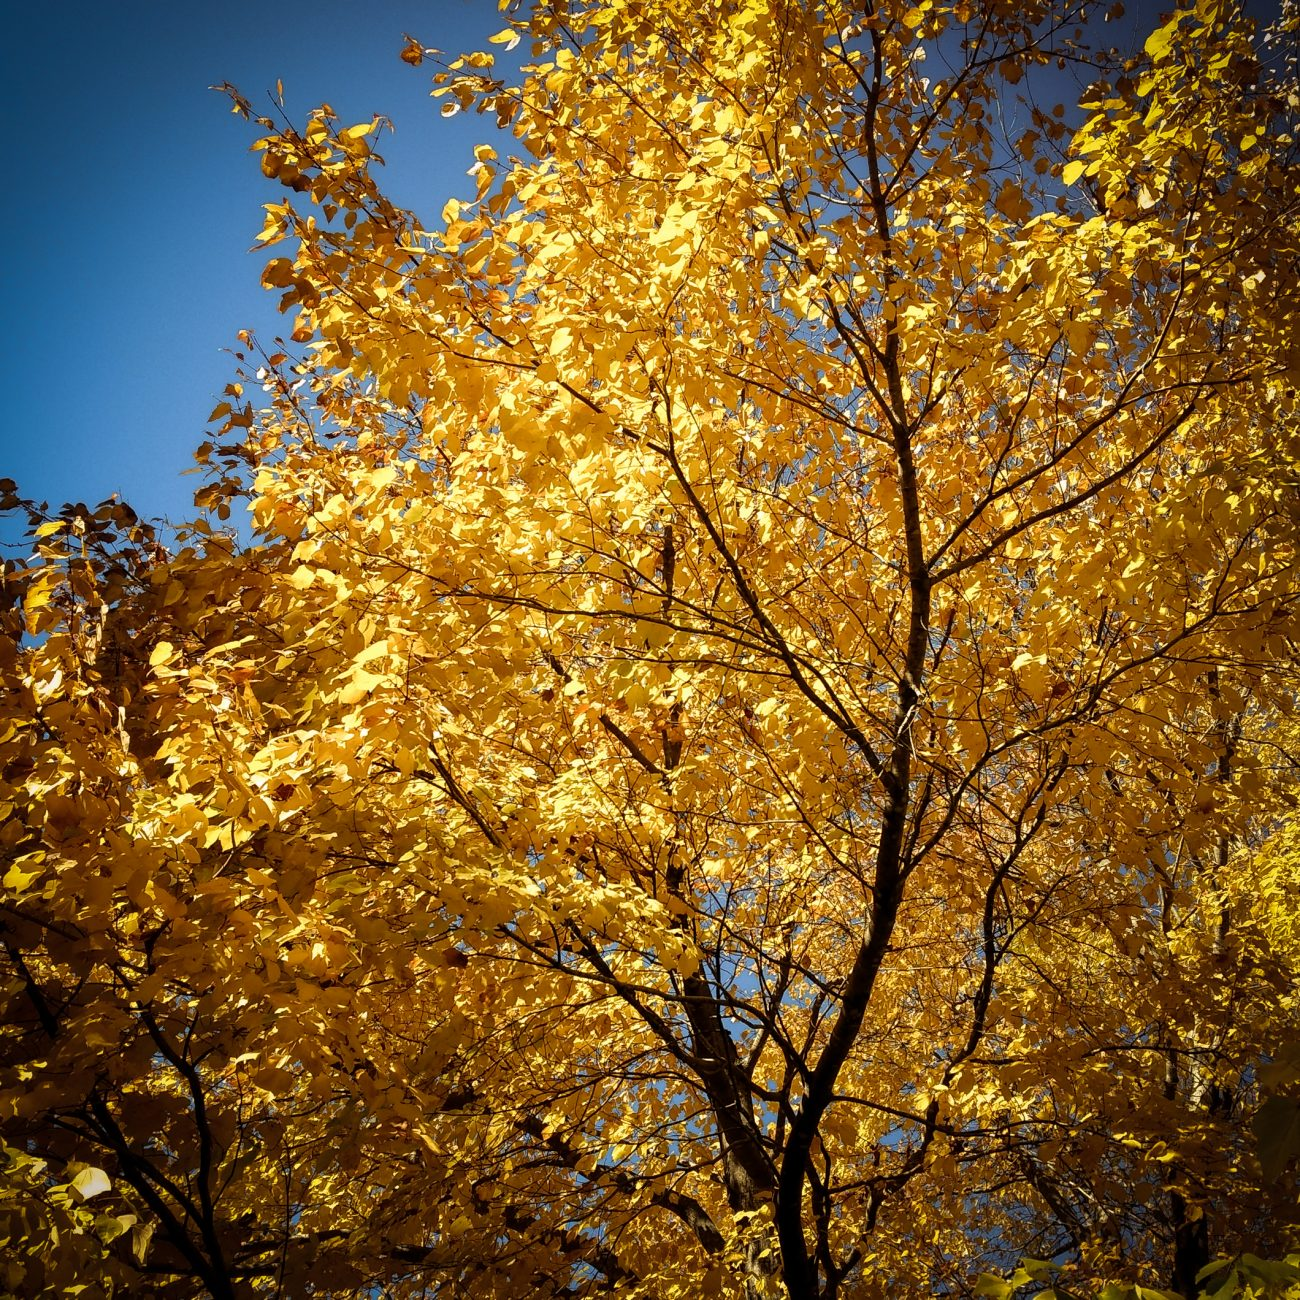 Picture of a tree with bright yellow fall foliage